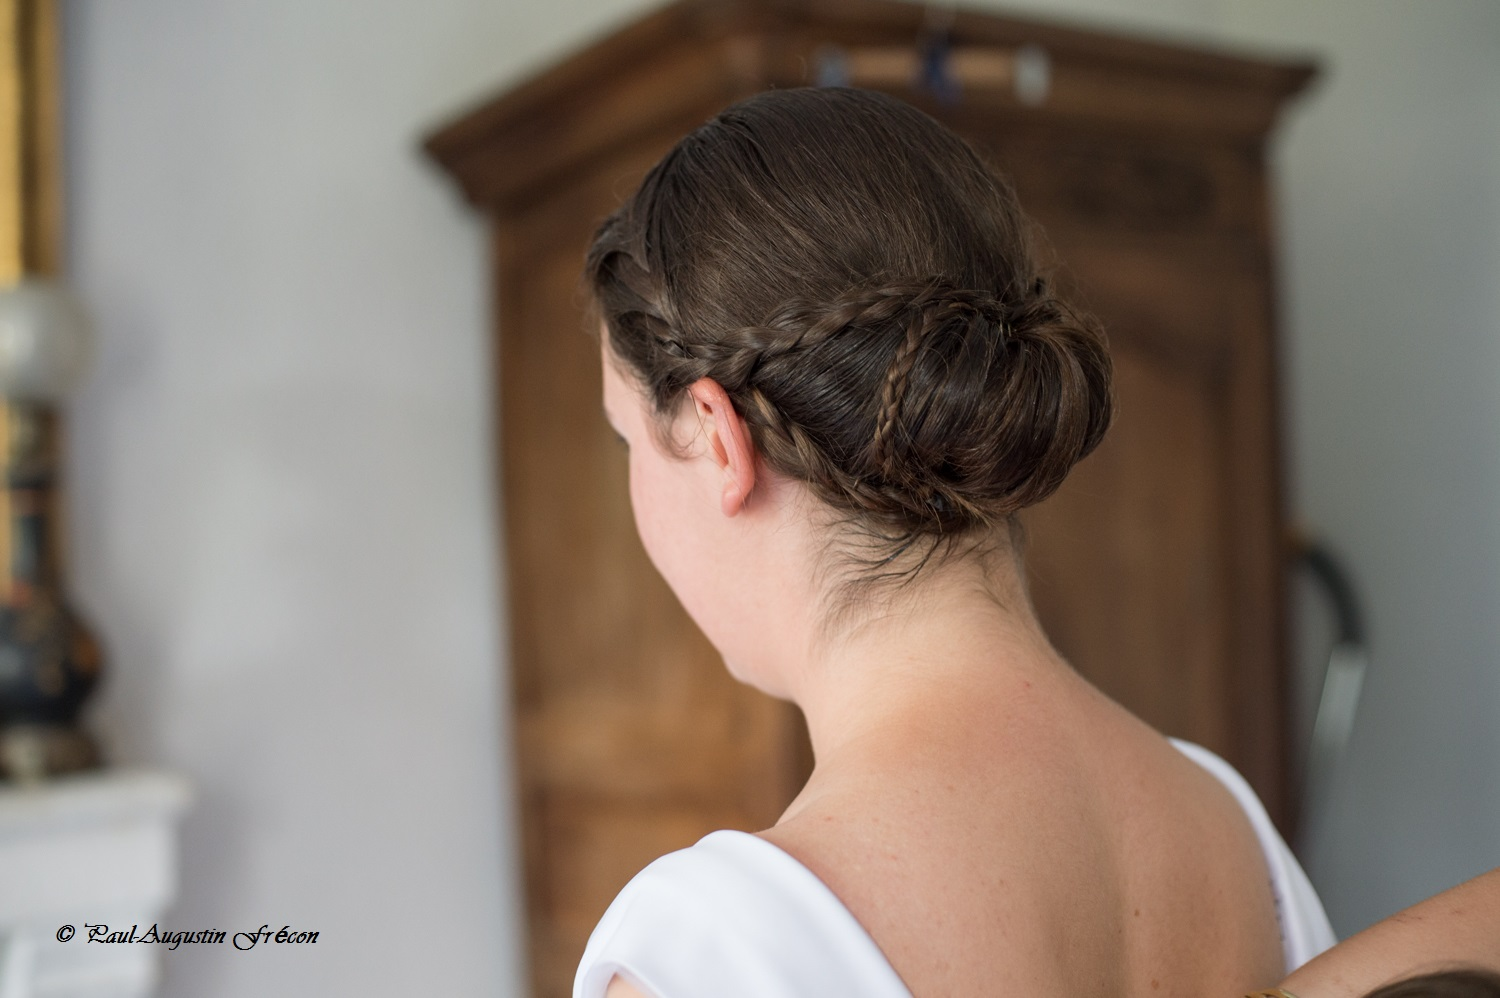 Mariage A-W coiffure mariee